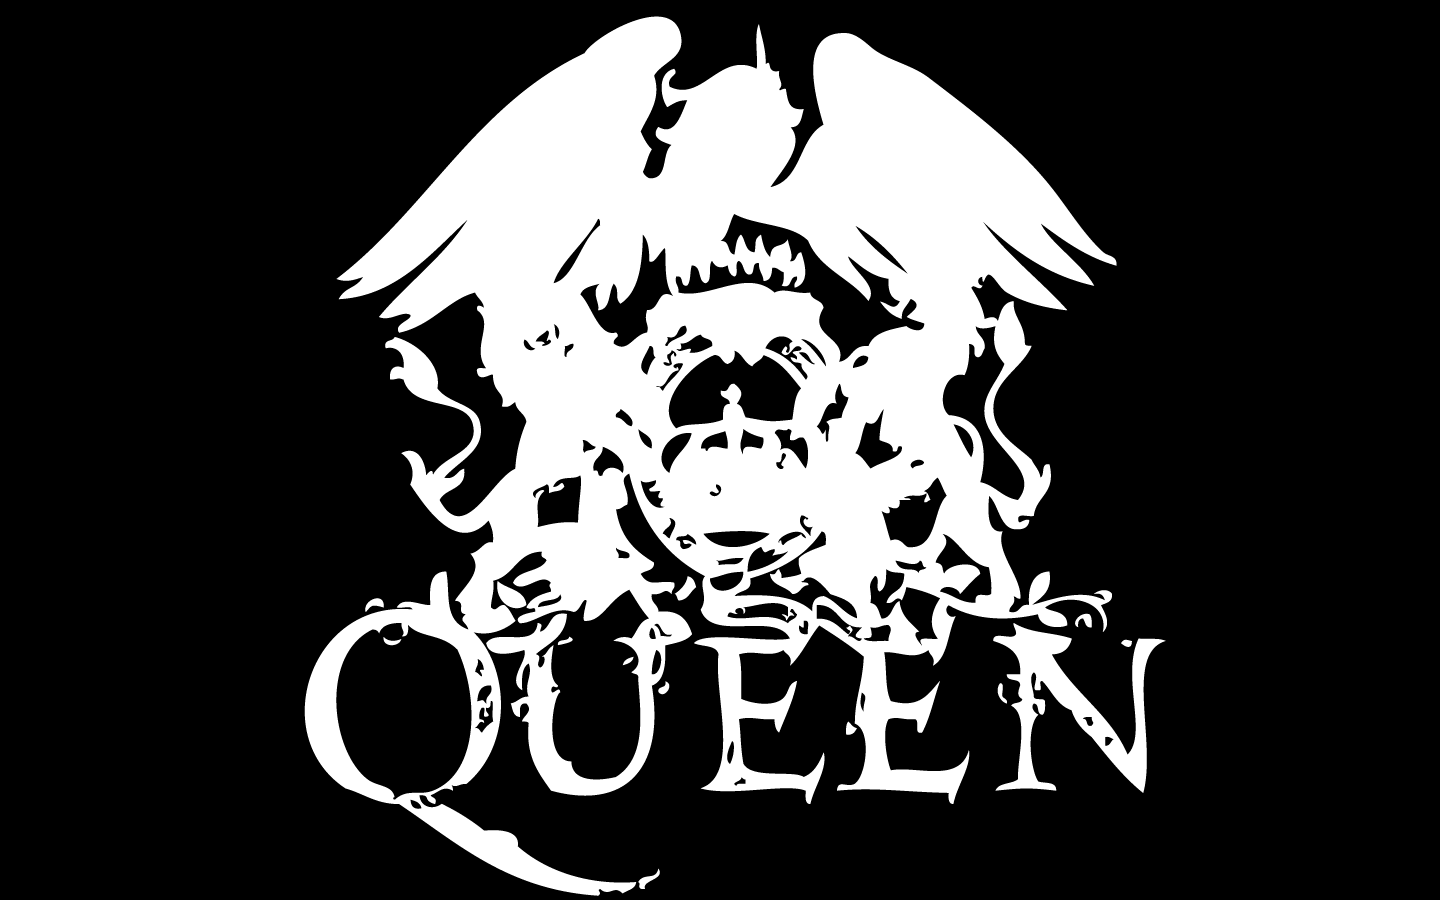 de queen Find the most current and reliable 7 day weather forecasts, storm alerts, reports and information for de queen, ar, us with the weather network.